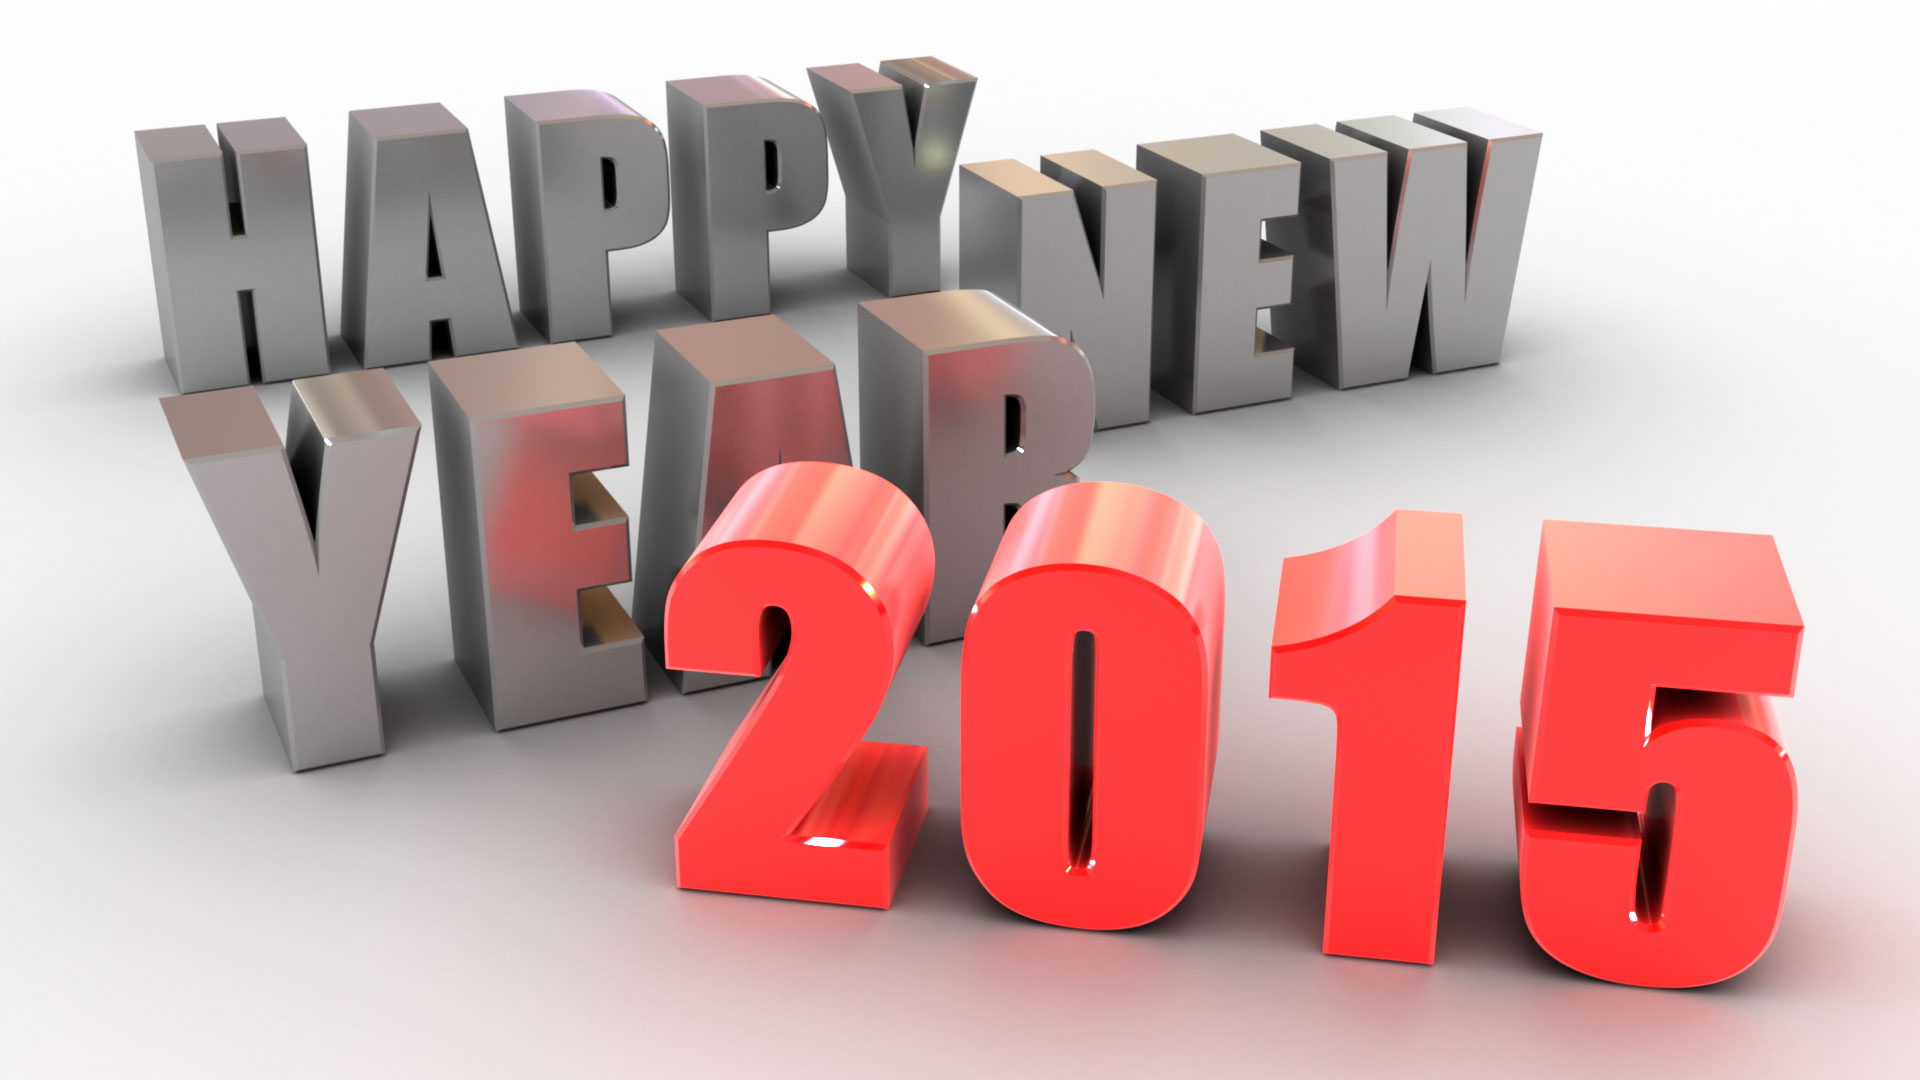 New years eve clipart 2014.